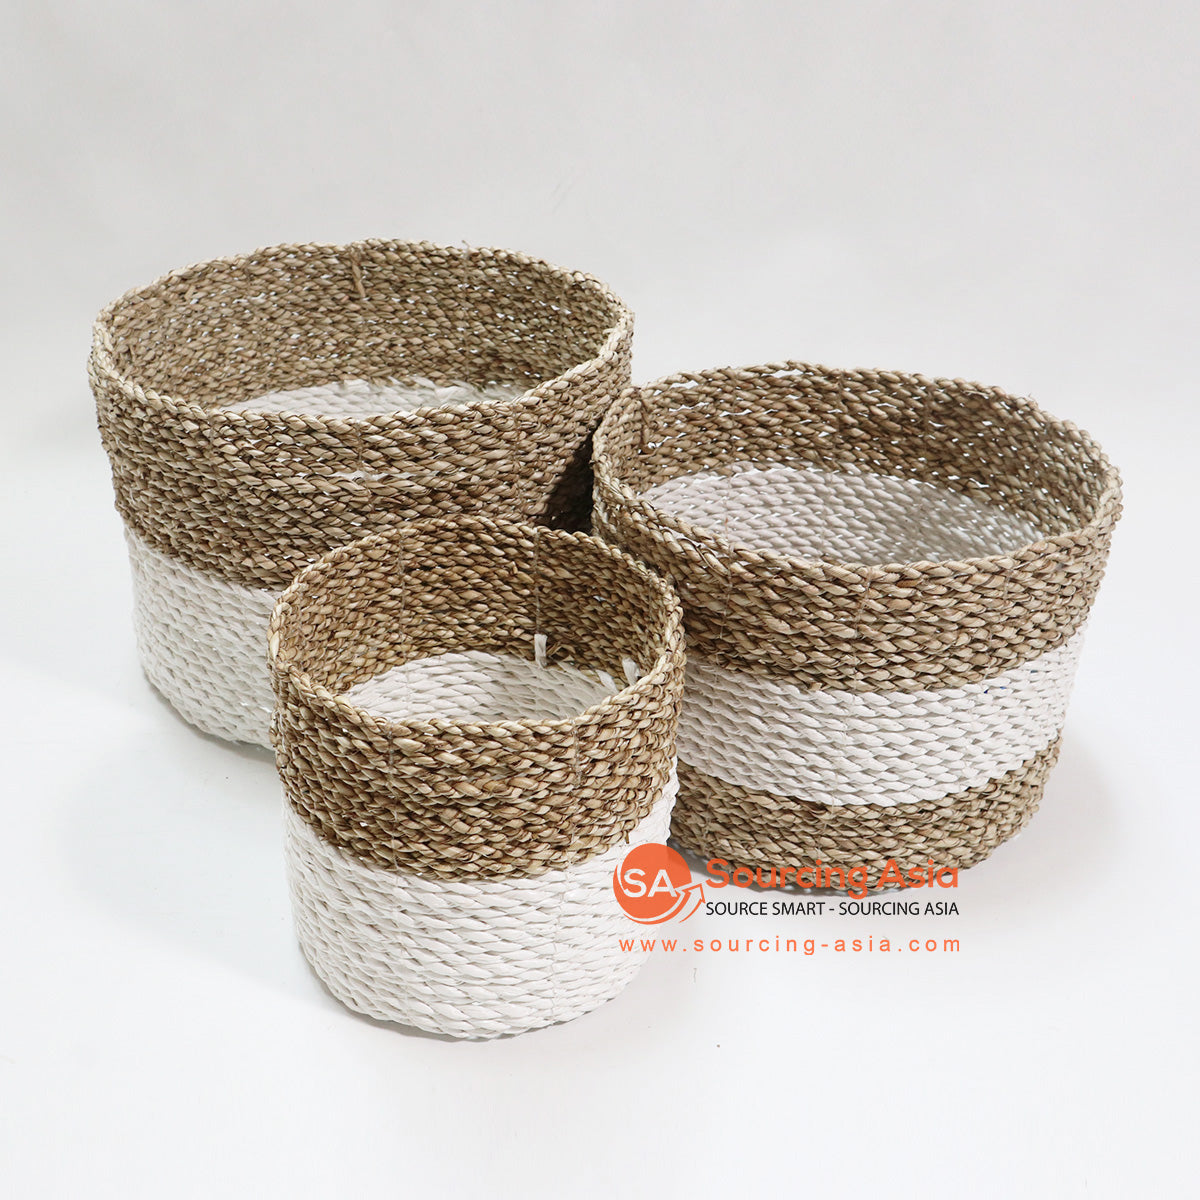 HBSC049-3 SET OF 3 MINI POT BASKETS NATURAL AND WHITE